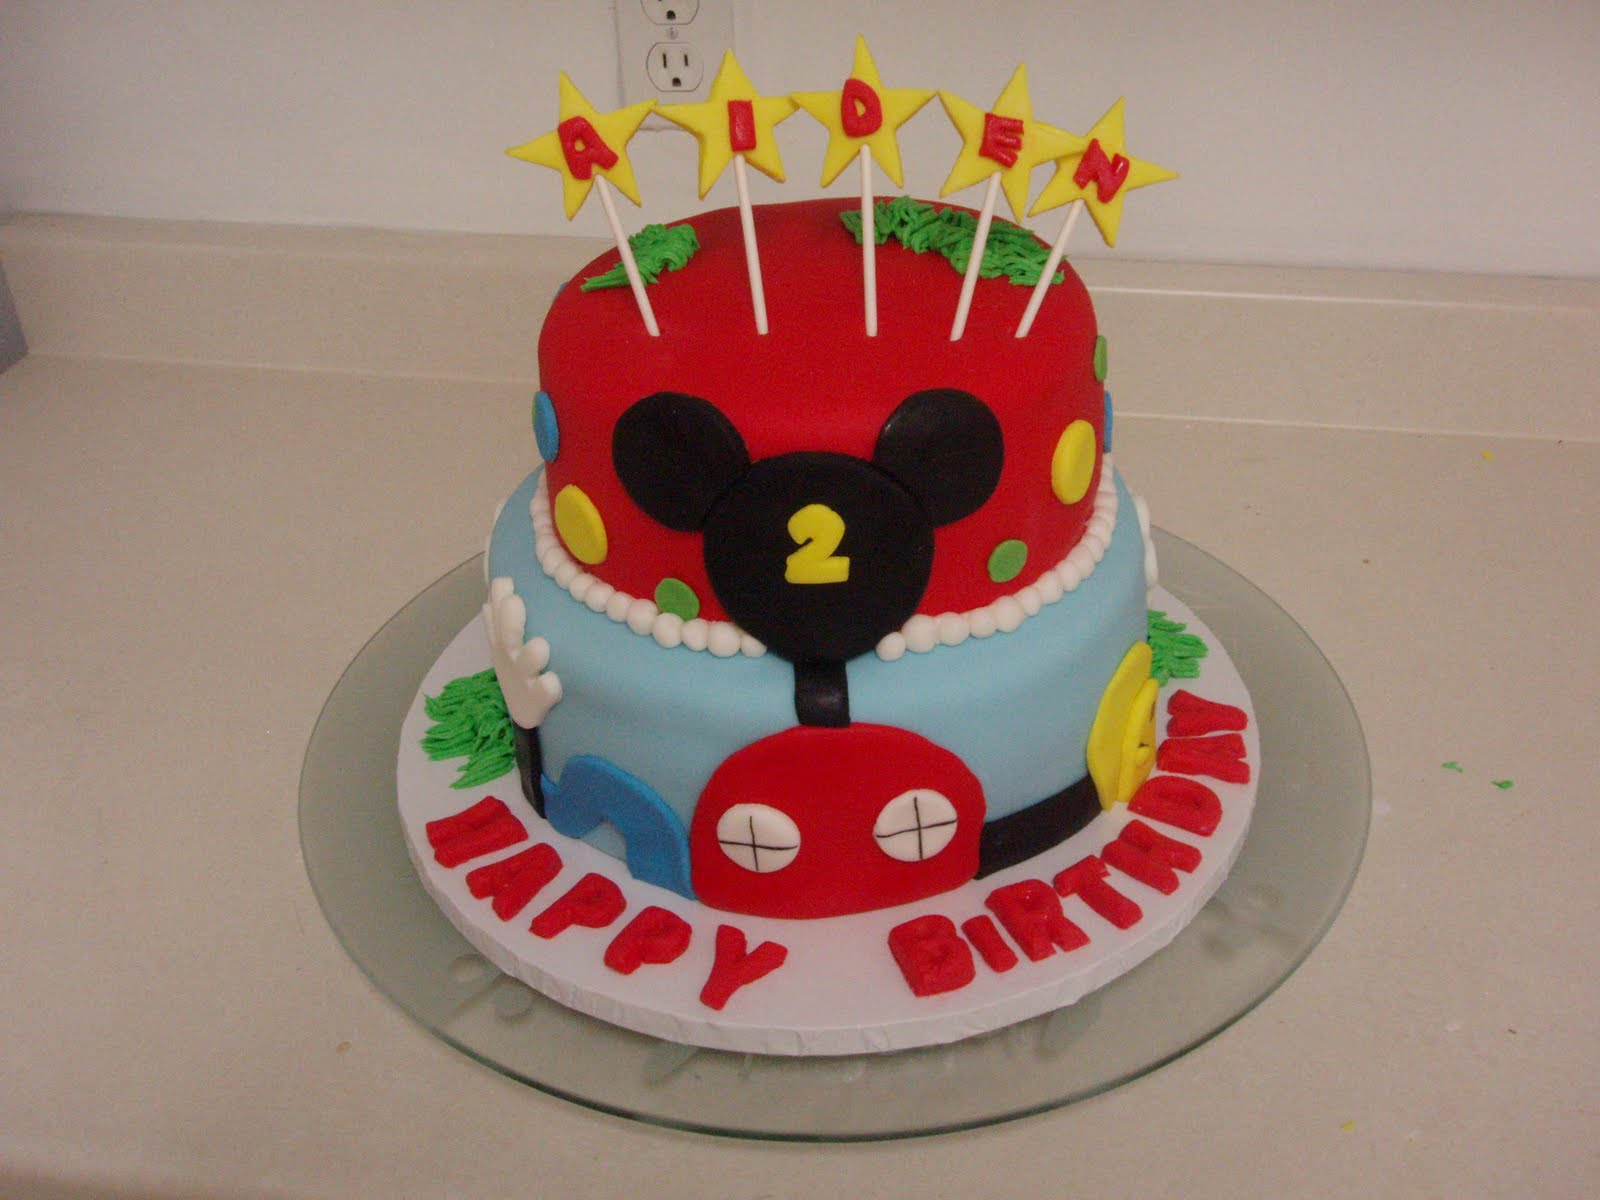 SugarBakers Cake Design Mickey Mouse Club cake